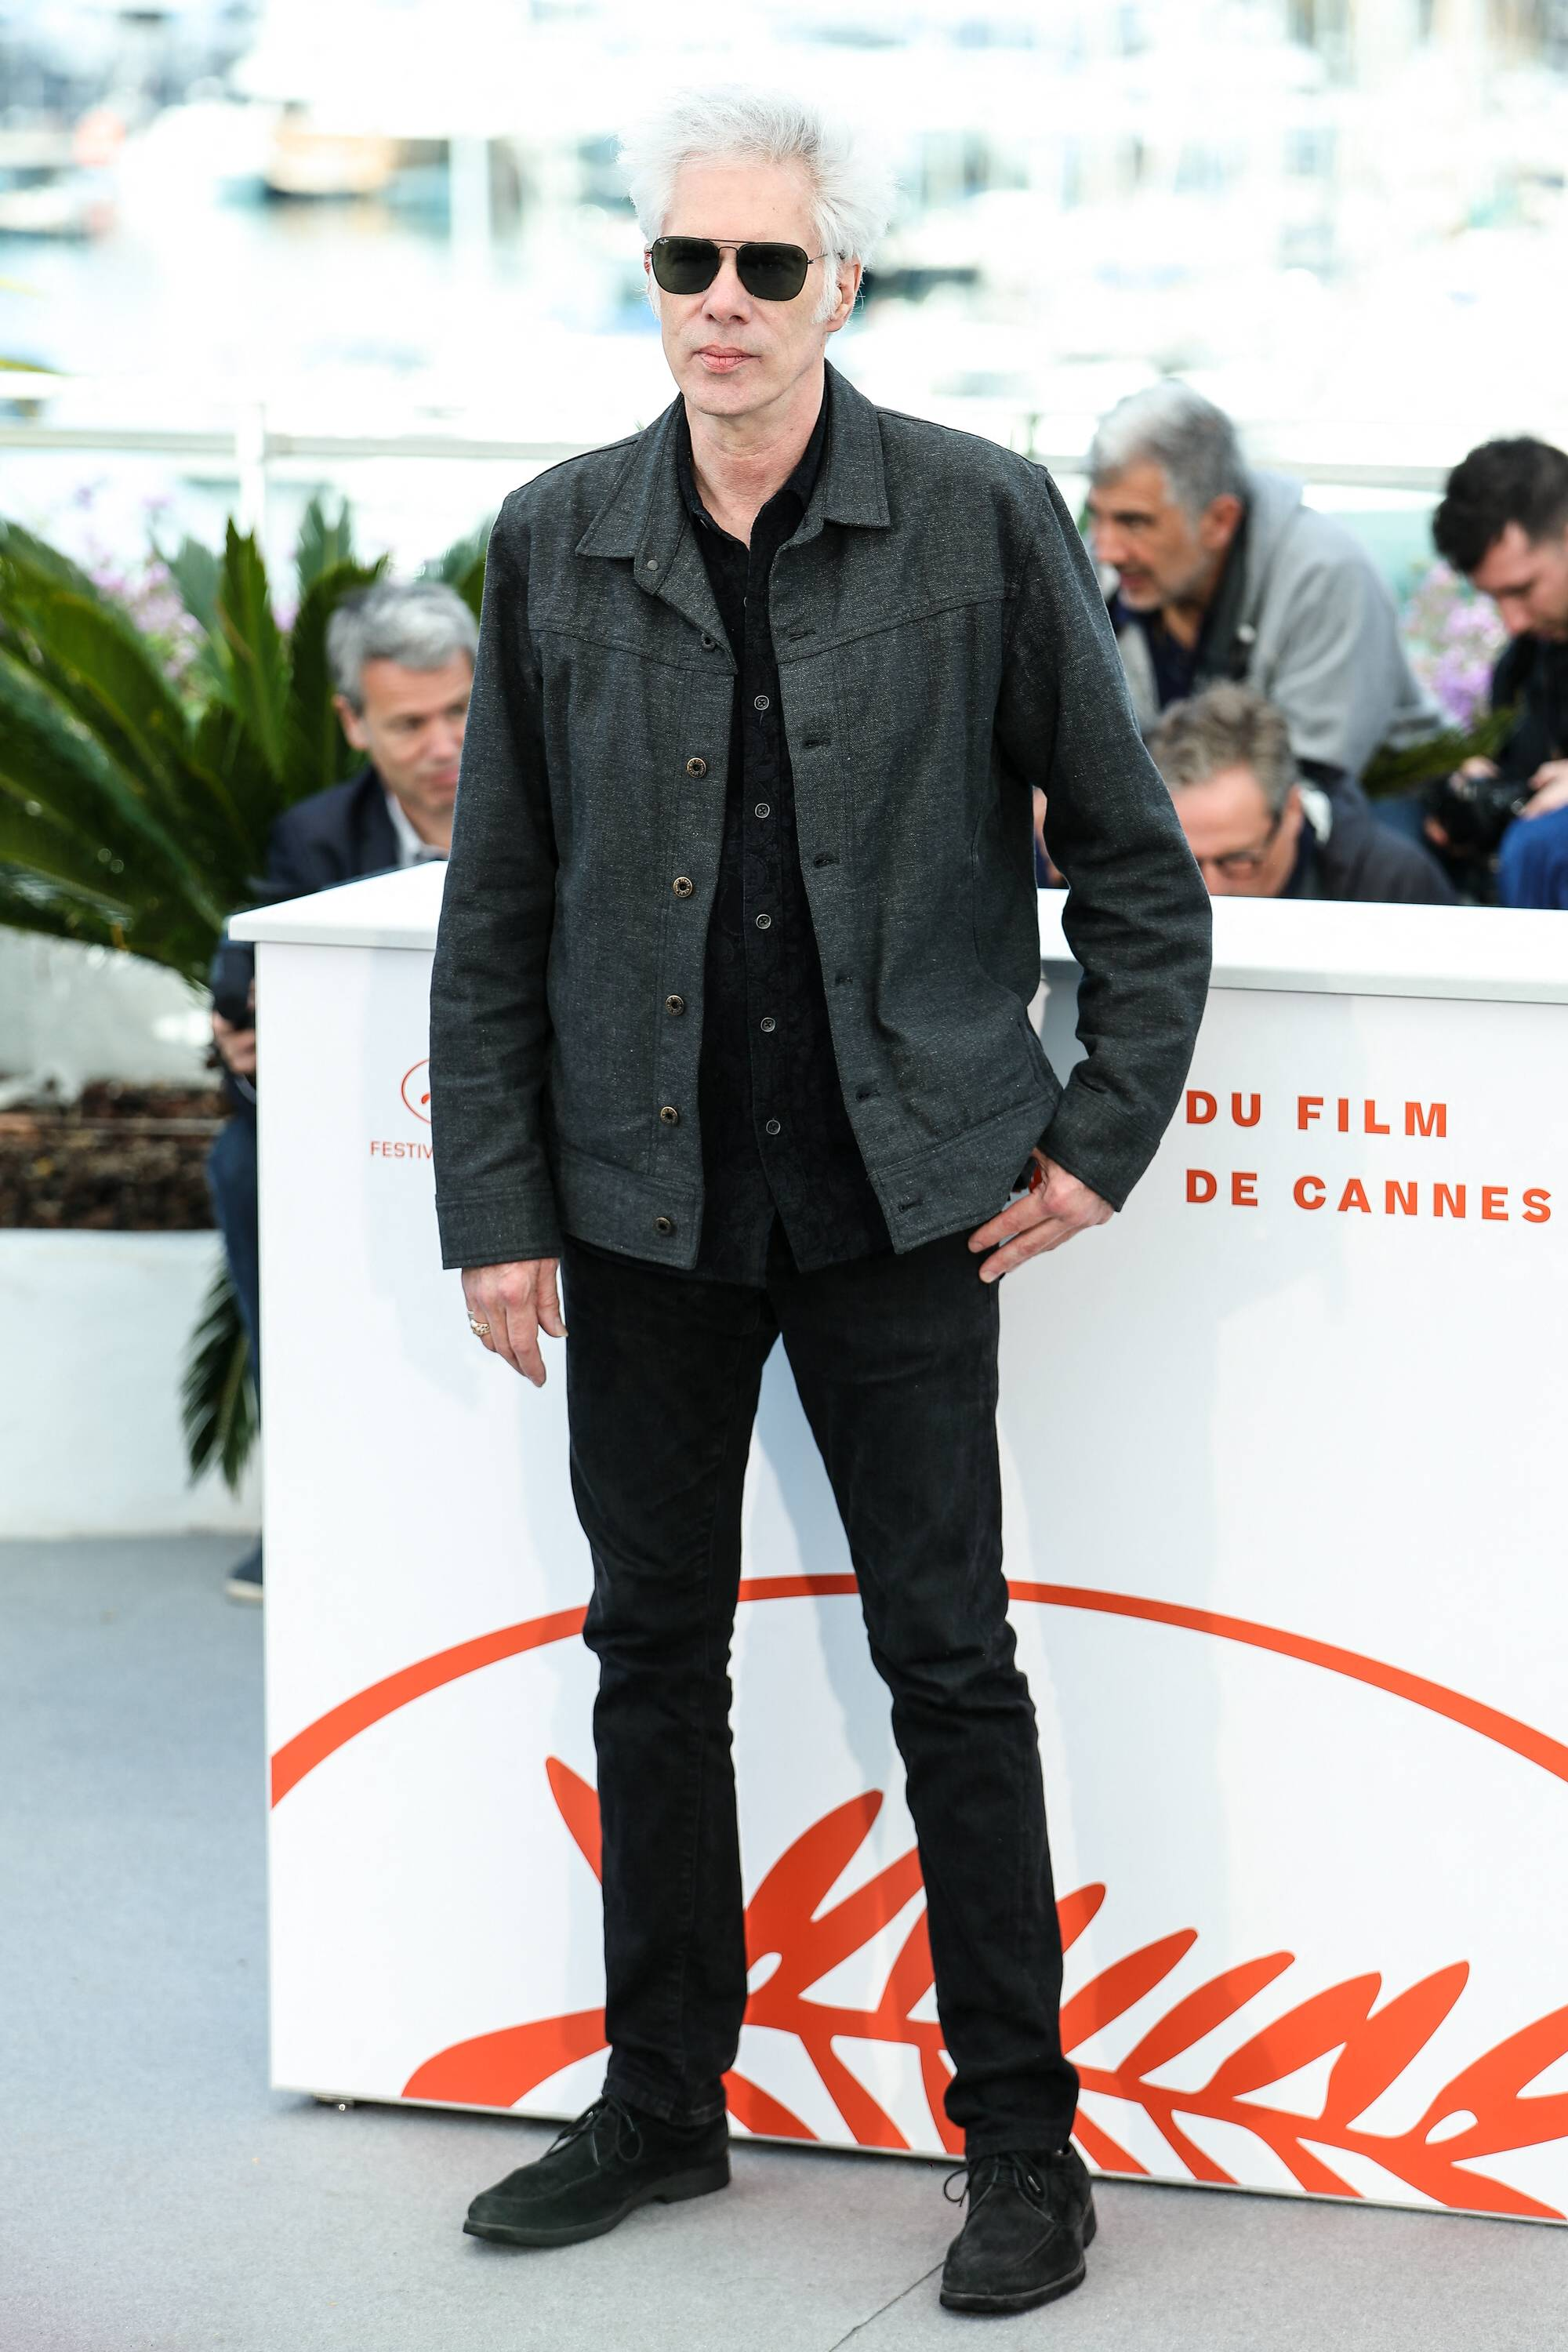 CANNES - MAY 15: Jim JARMUSCH On THE DEAD DONT DIE Photocall During The 2019 Cannes Film Festival On May 15, 2019 At Palais Des Festivals In Cannes, France. КРЕДИТ Lyvans Boolaky ImageSPACE MediaPunch/Legion Media